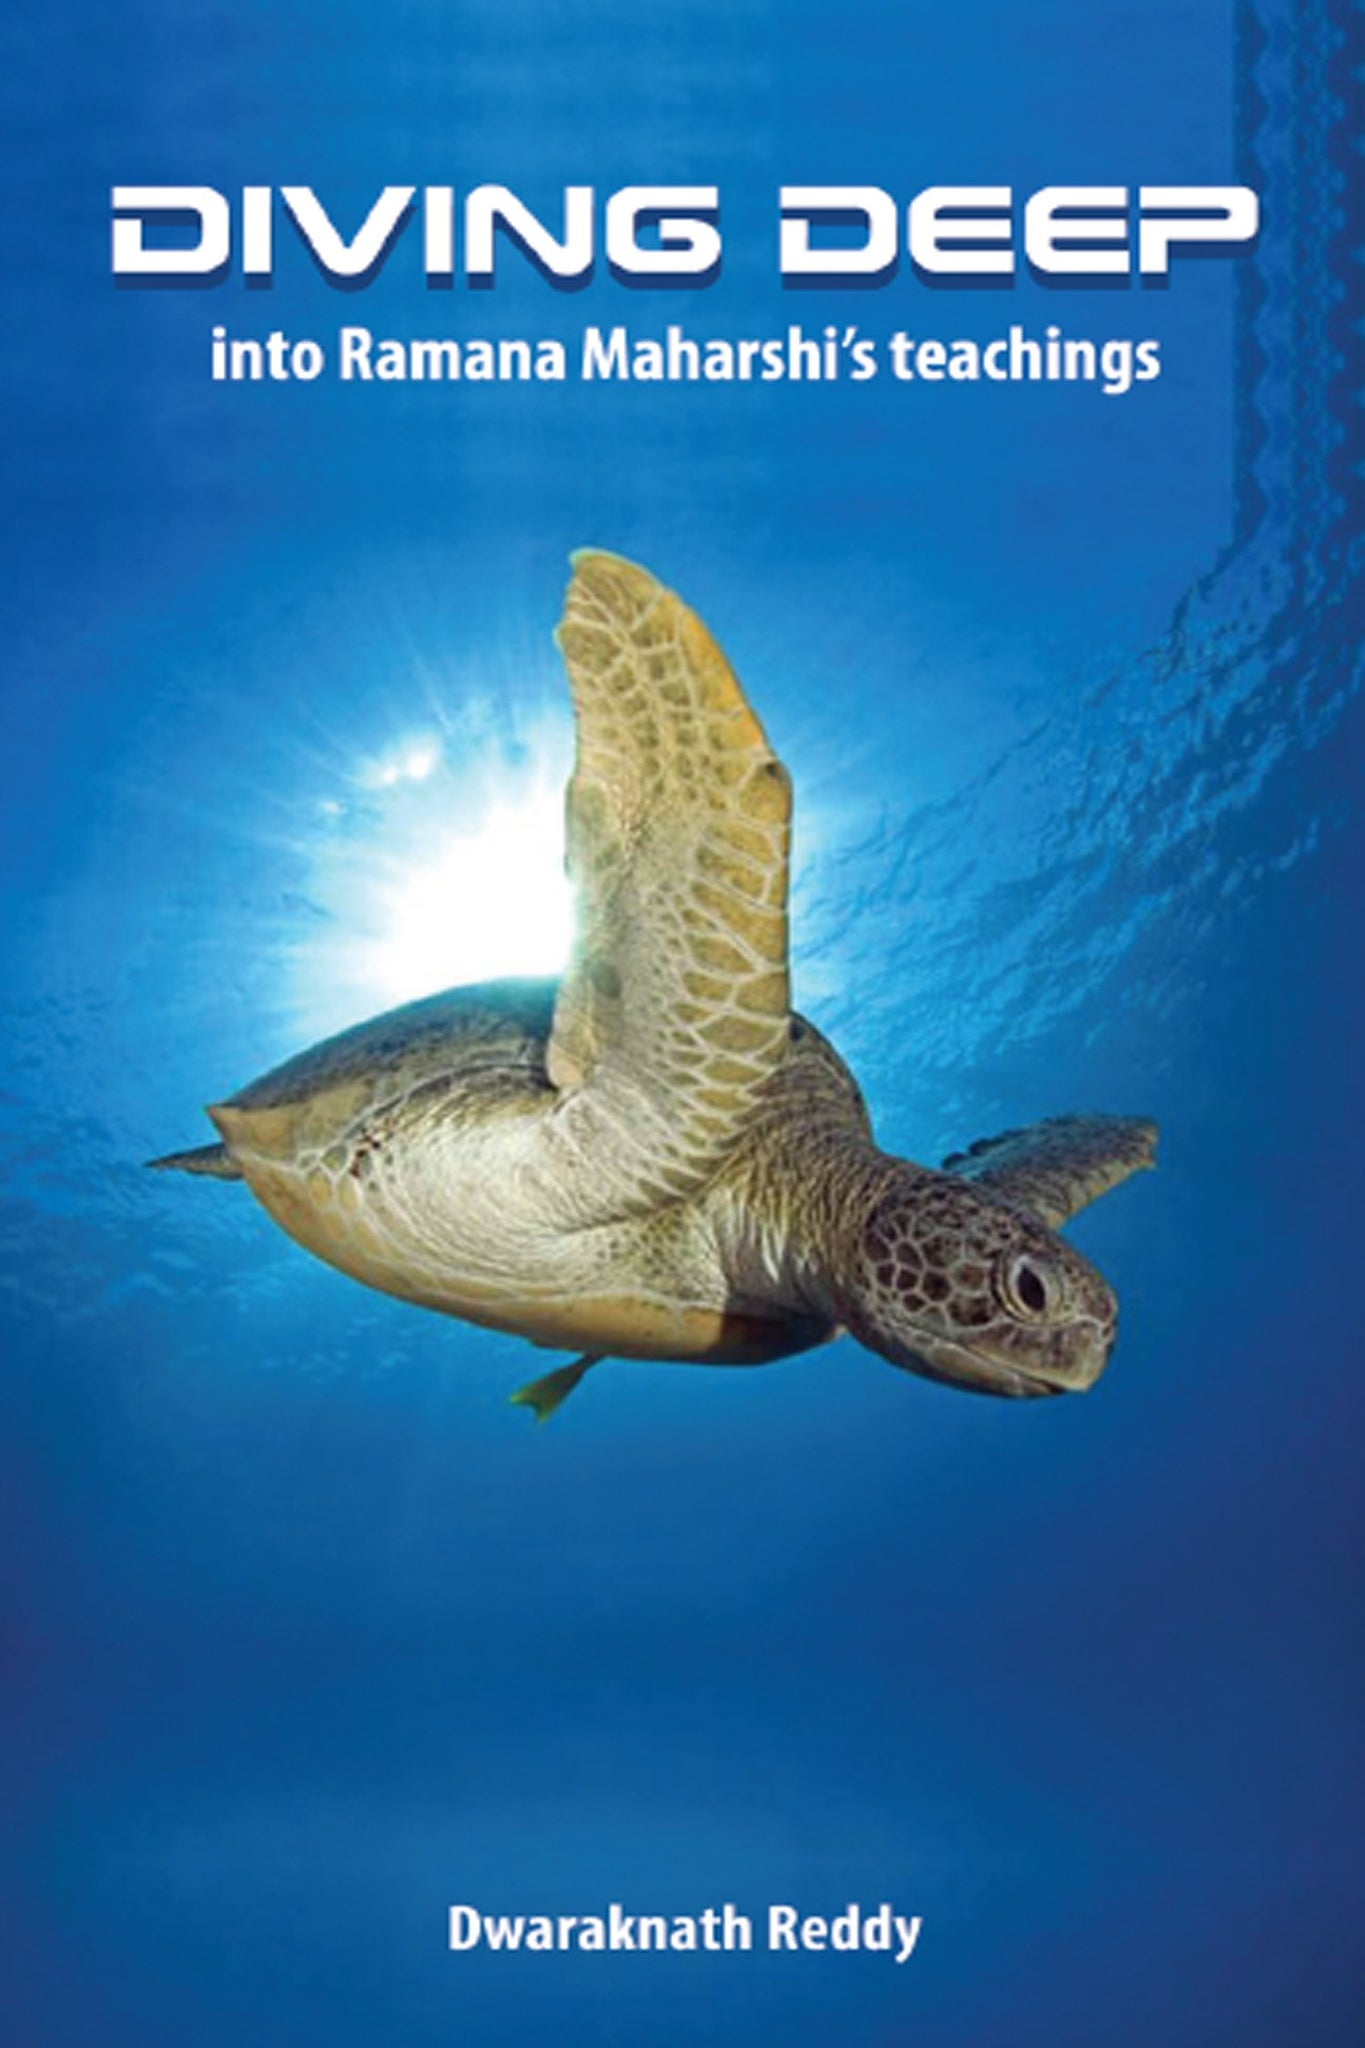 Diving Deep Into Ramana Maharshi's Teachings